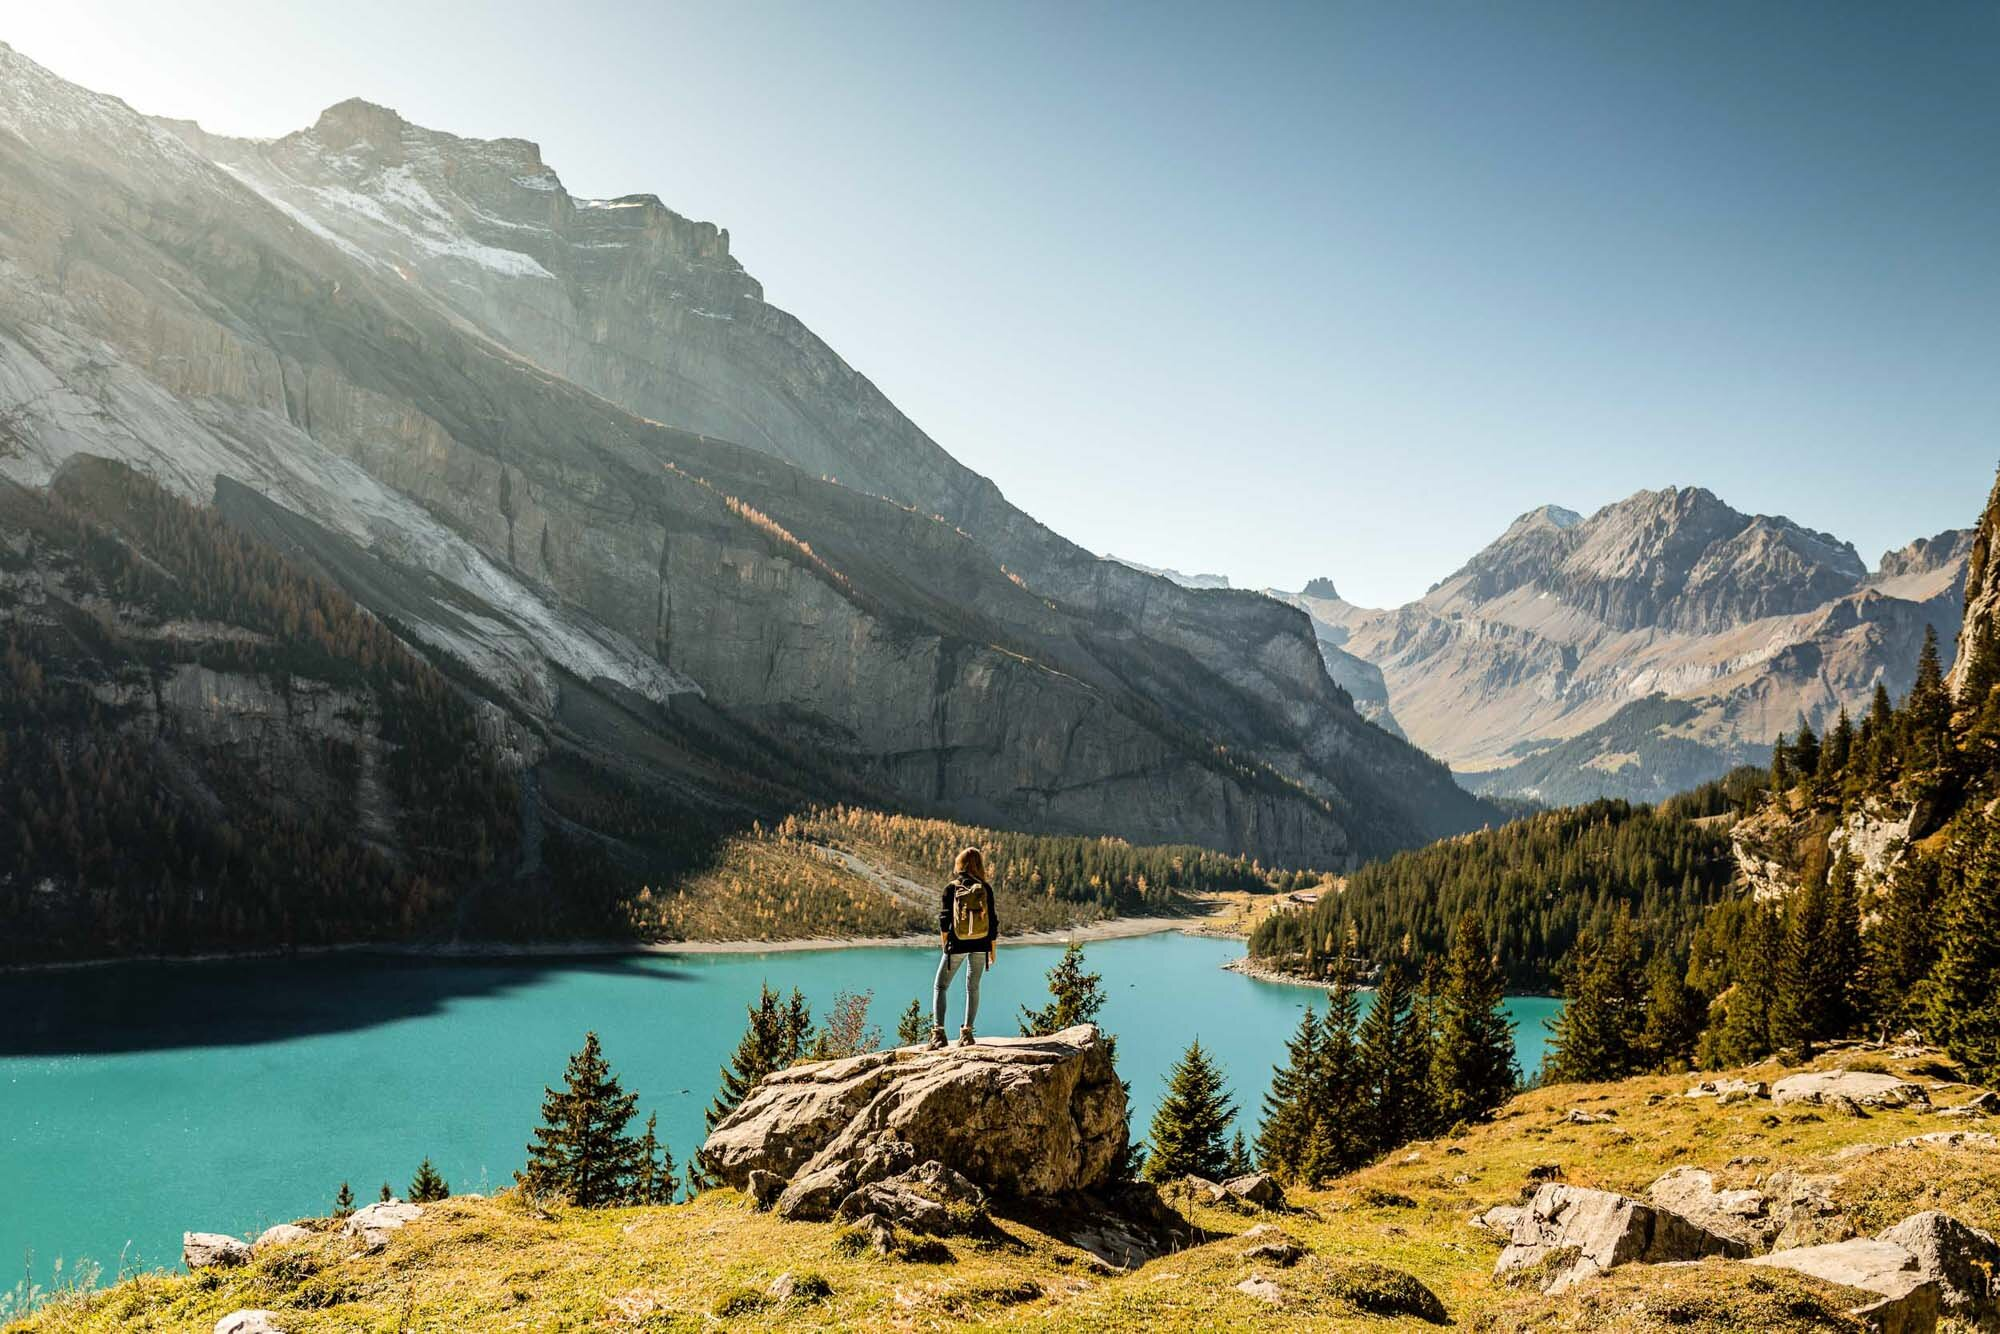 Autumn mood with a hiker at Oeschinensee near Kandersteg. Copyright by: Switzerland Tourism